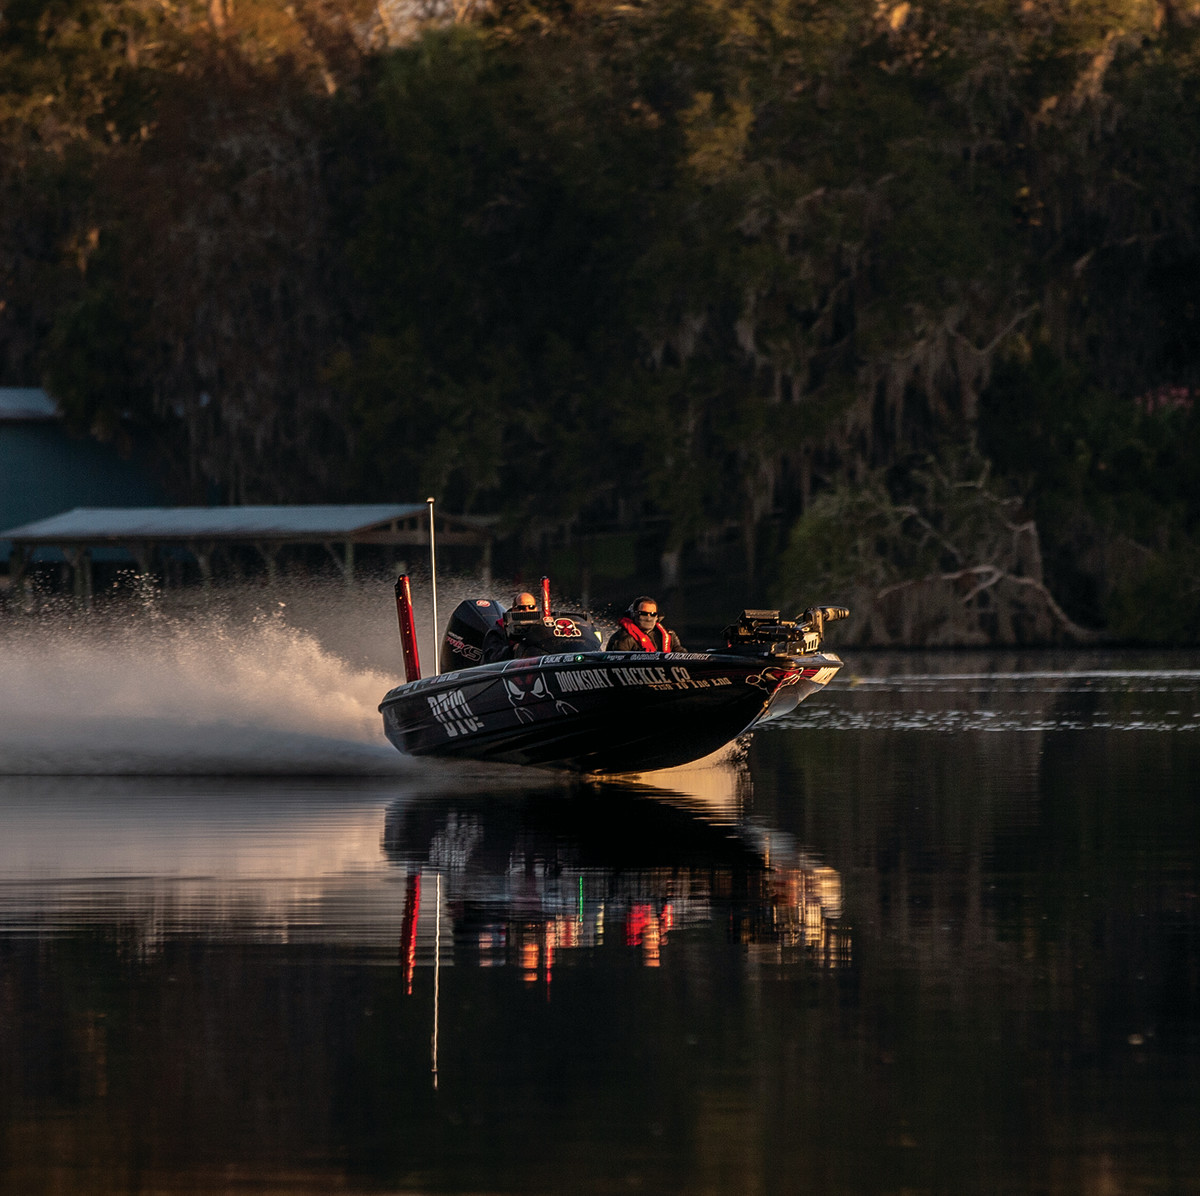 Speed has always been a part of the game, with anglers racing to spots and eventually flying back to the ramp to avoid a late penalty.